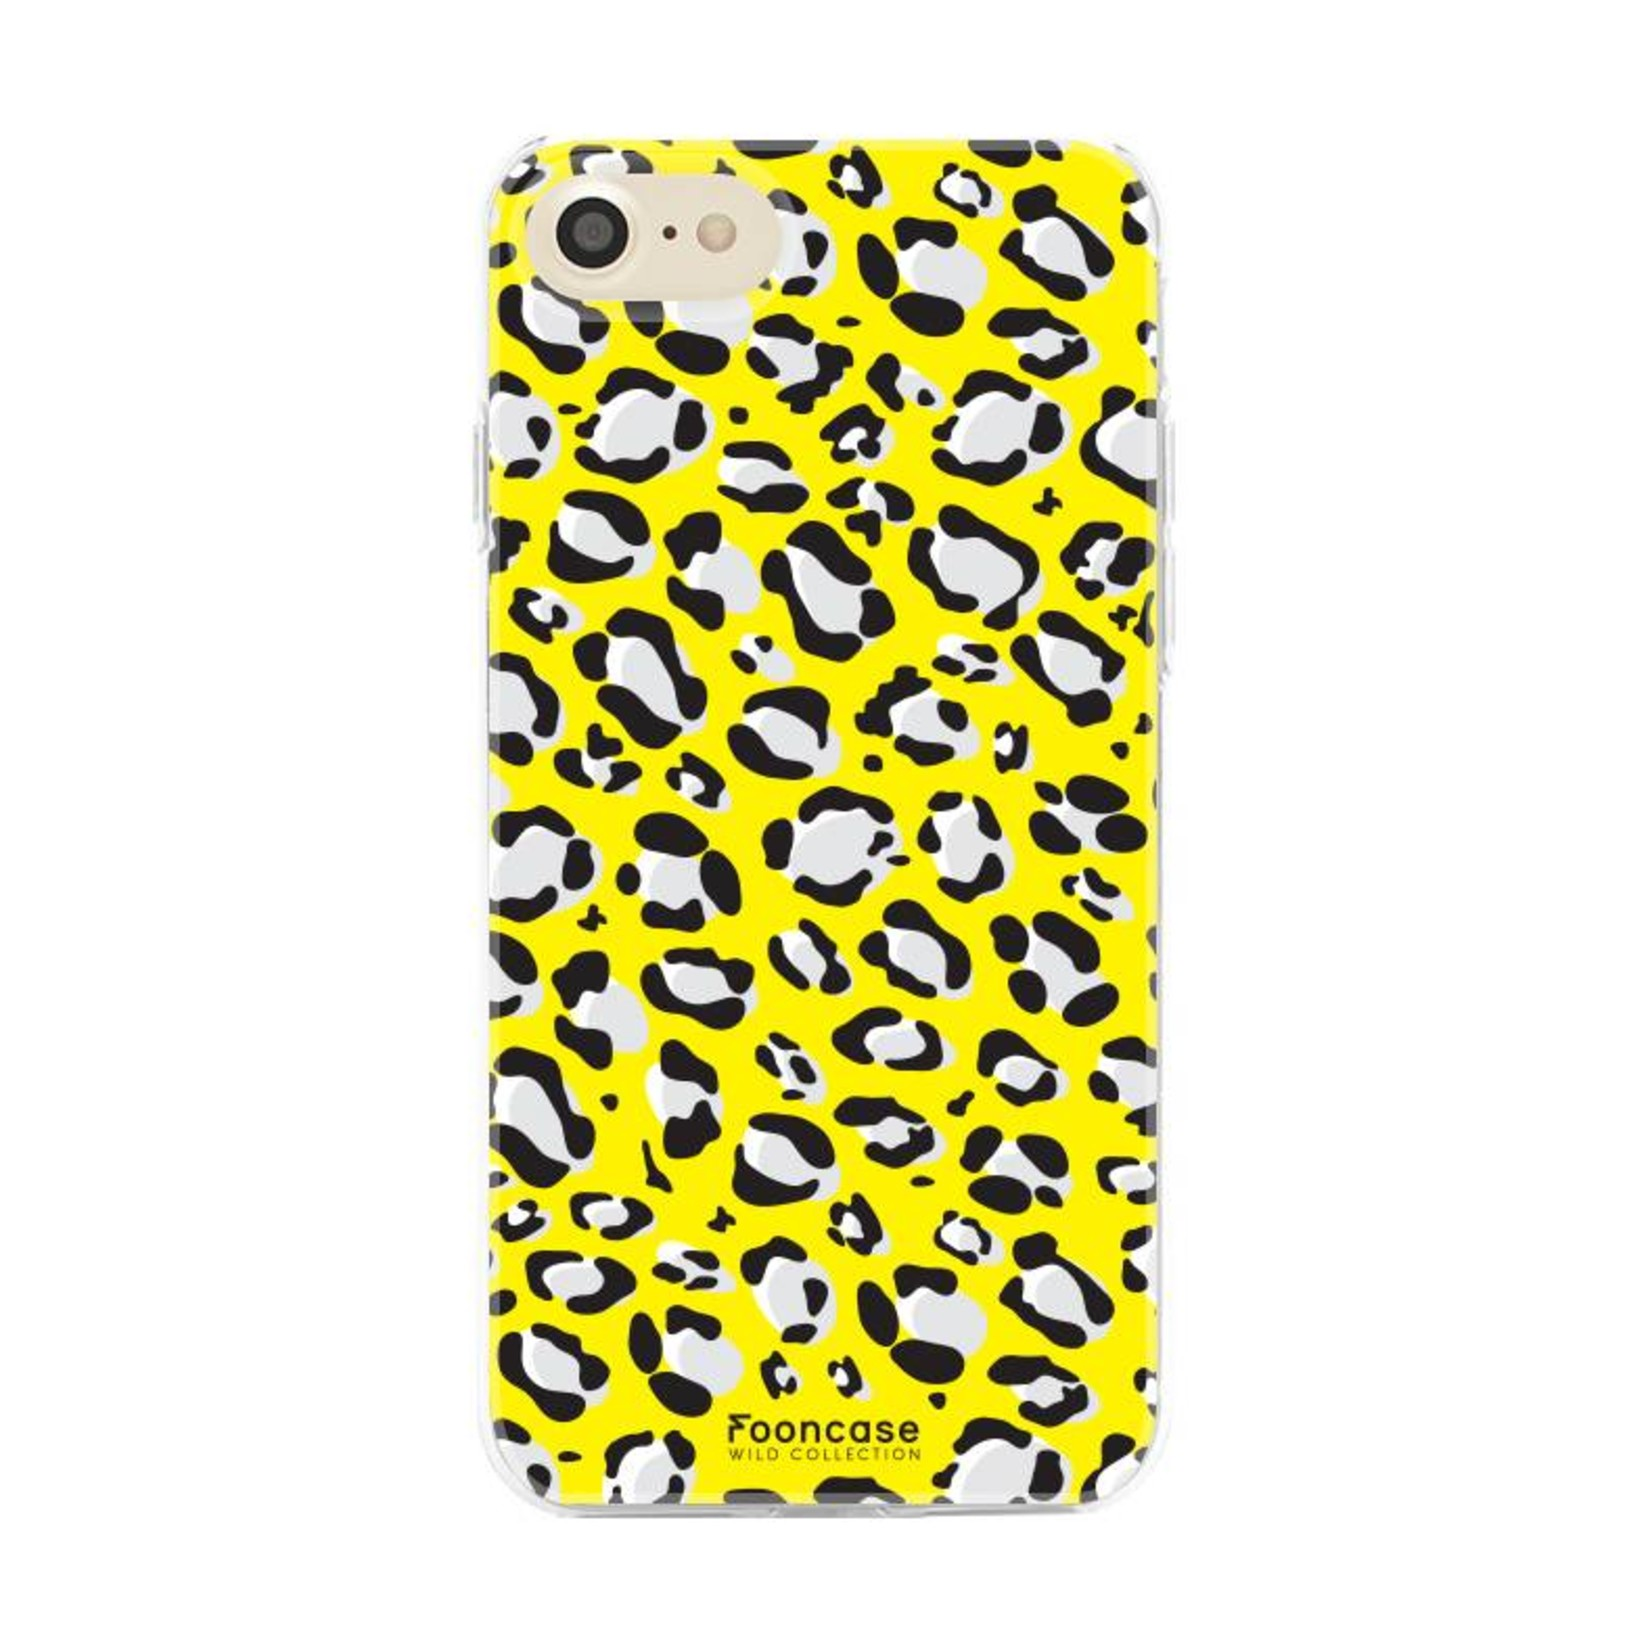 FOONCASE iPhone SE (2020) hoesje TPU Soft Case - Back Cover - WILD COLLECTION / Luipaard / Leopard print / Geel